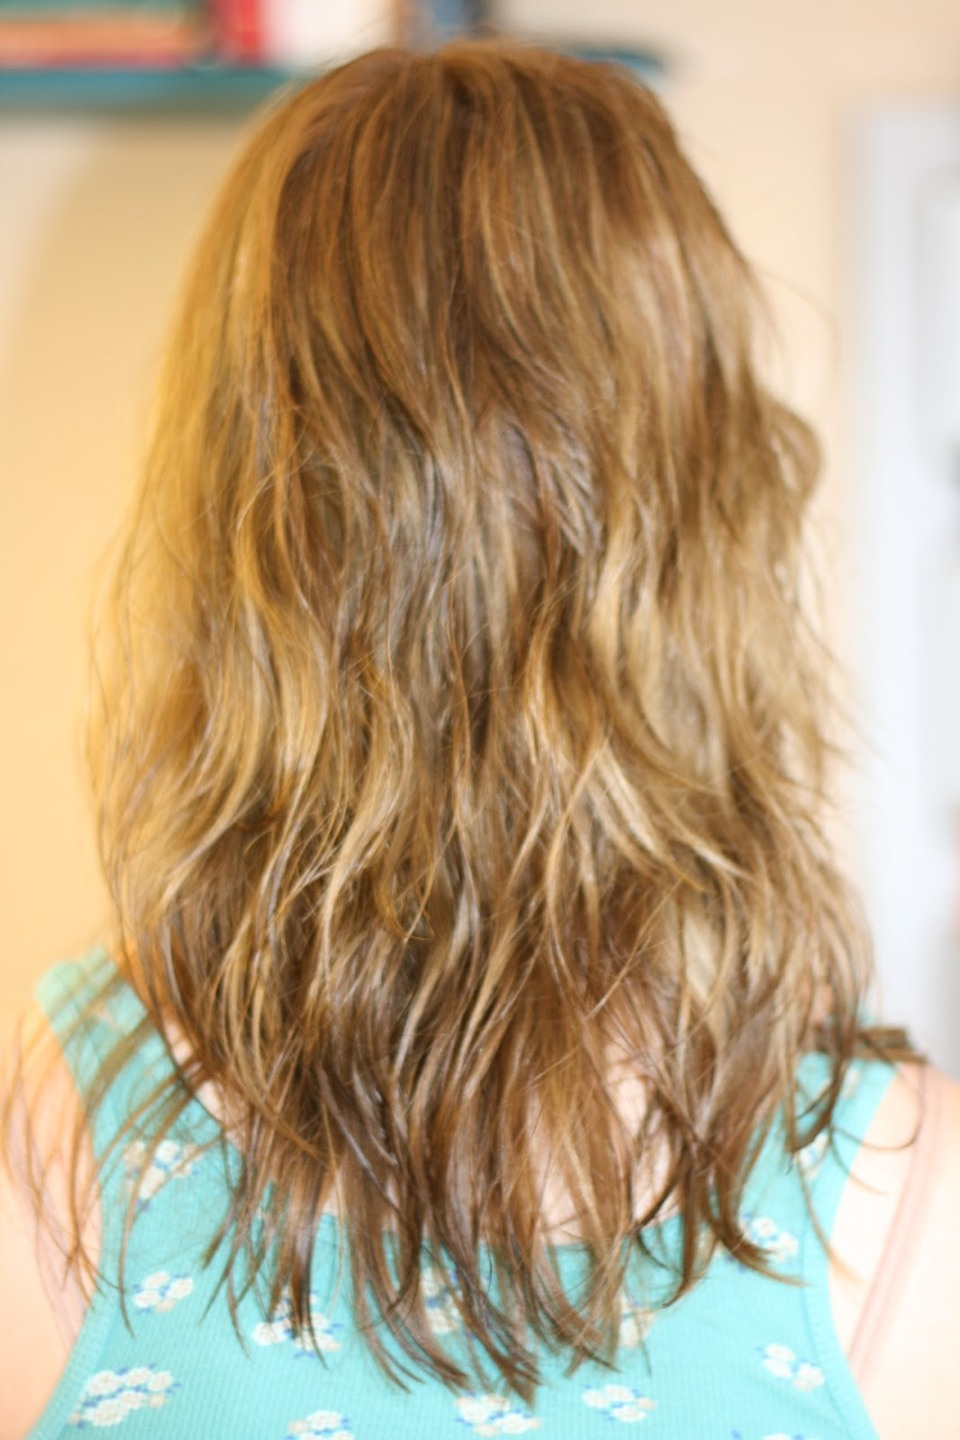 Put it in you hair an hour and a half before washing your hair and when you get out of the shower your hair will be soft. This also helps grow your hair.